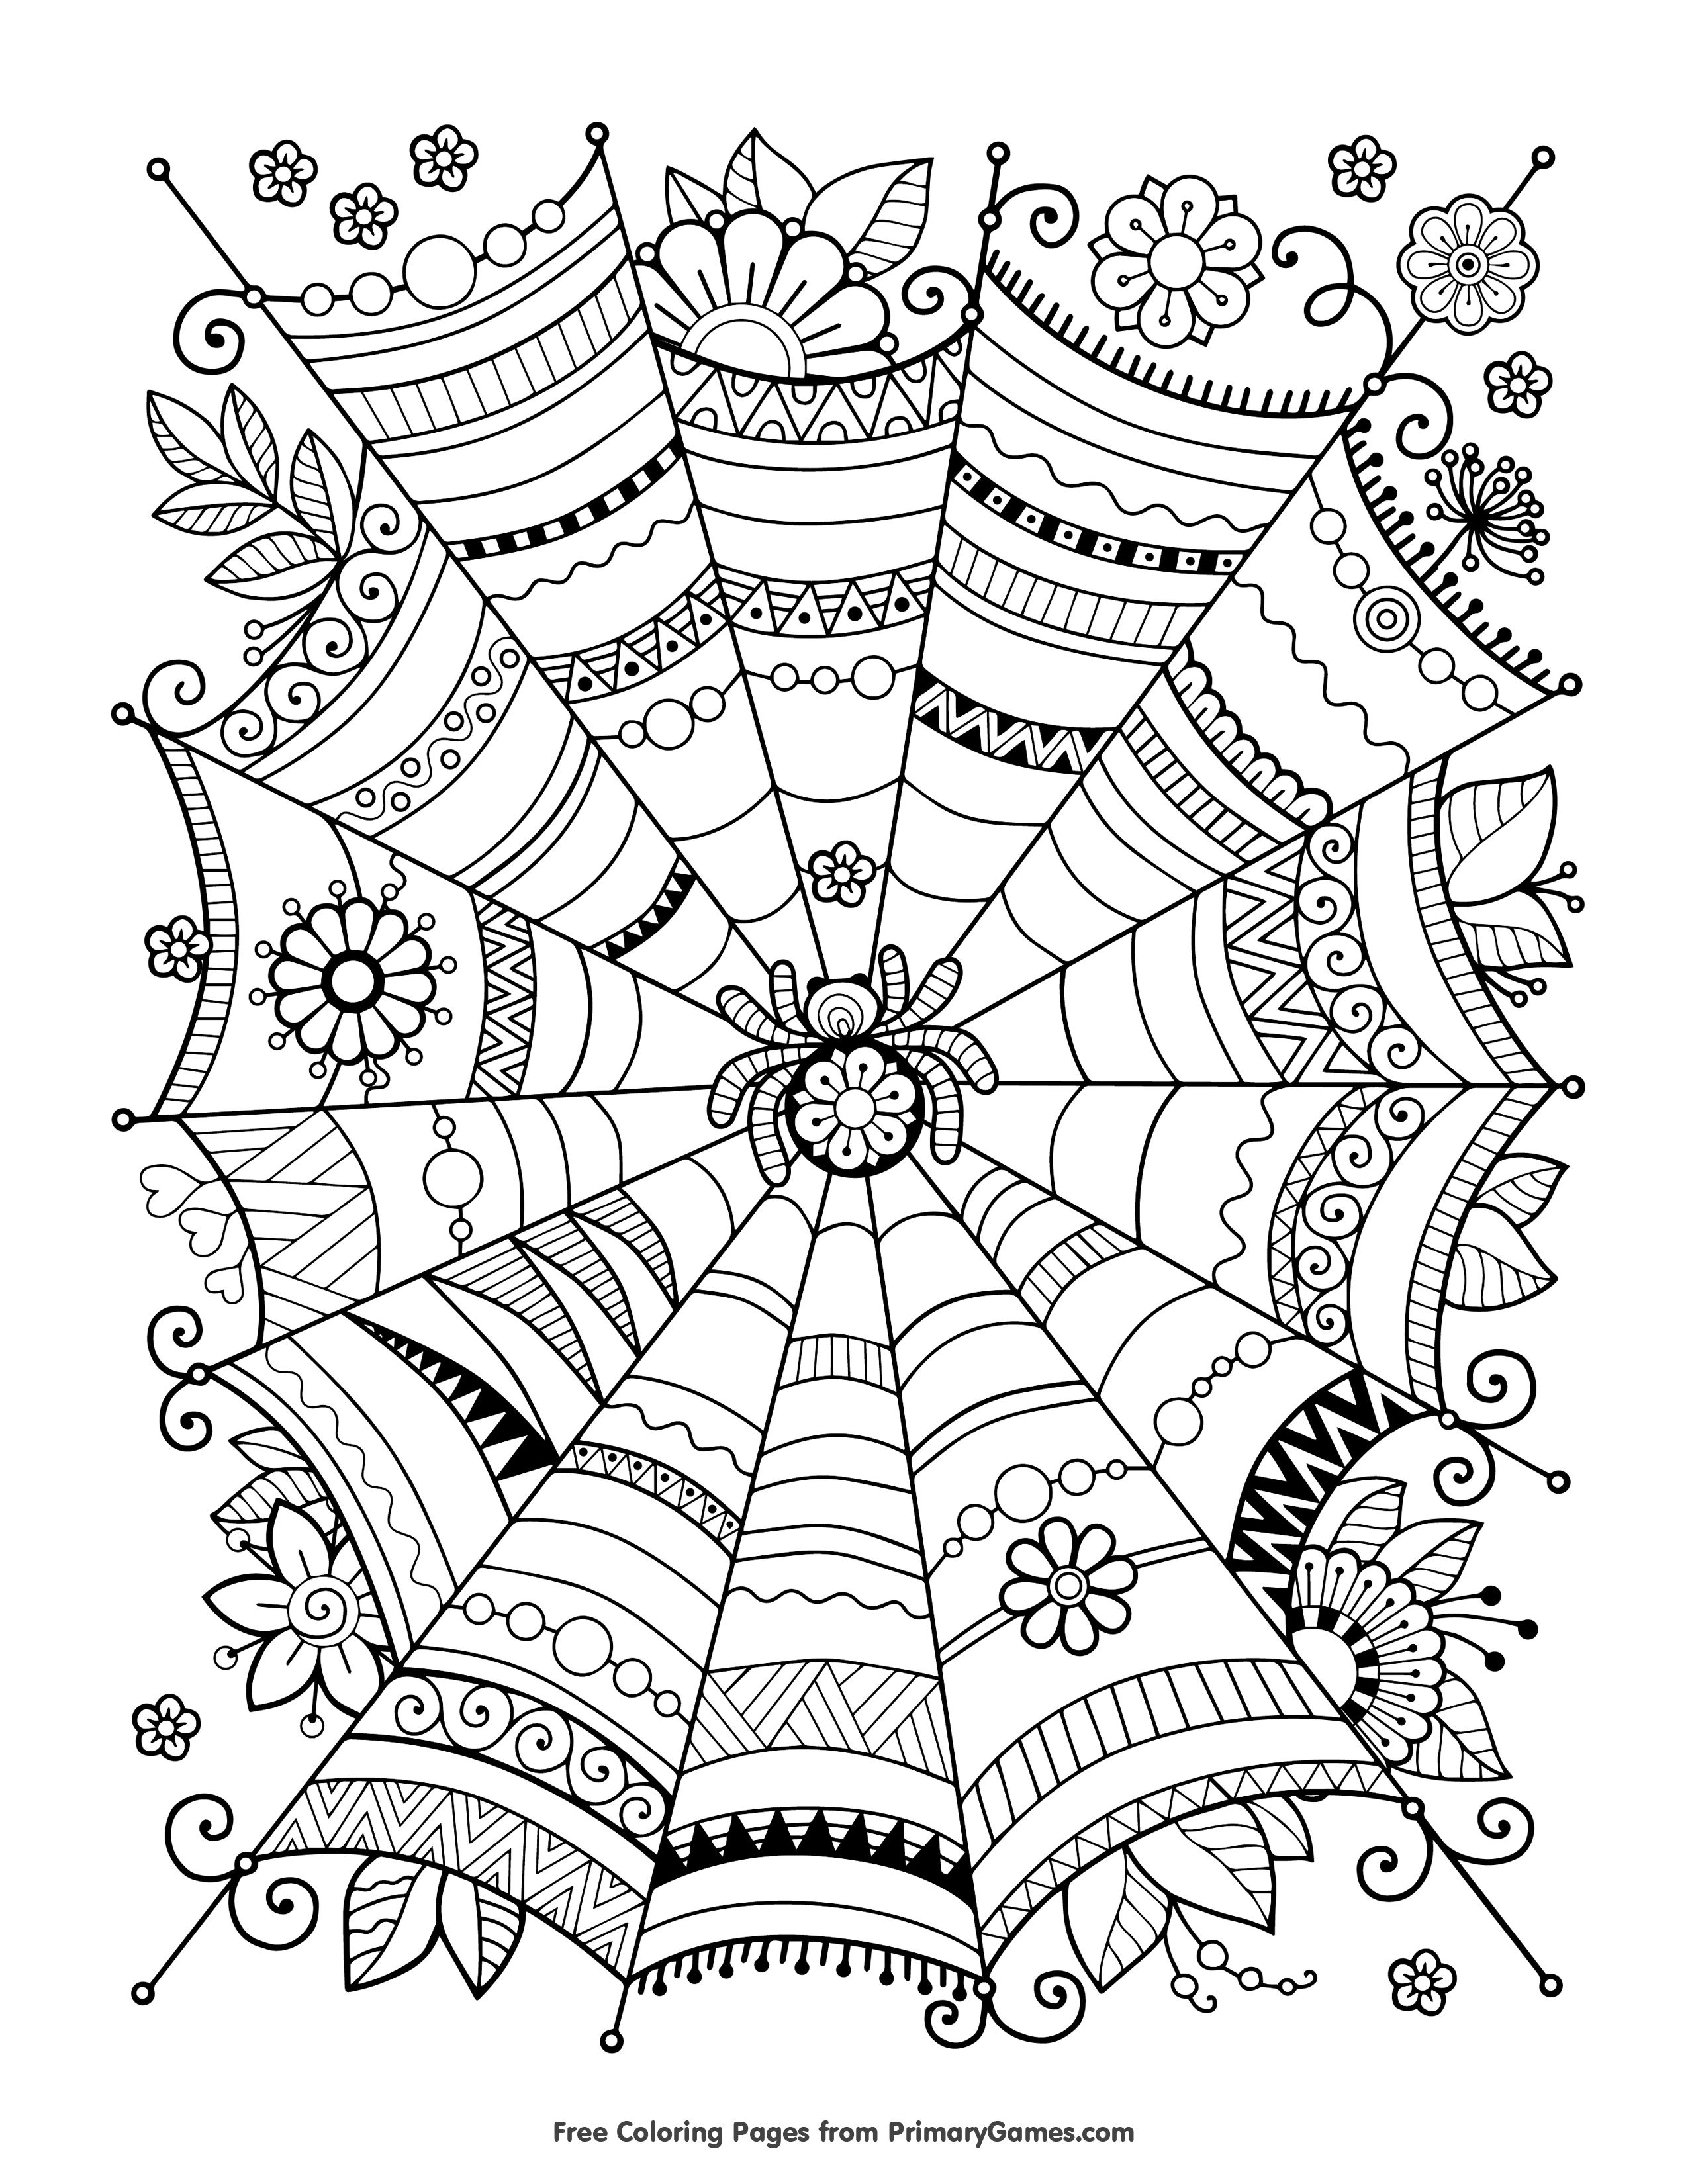 Halloween coloring pages ebook zentangle spider web adult